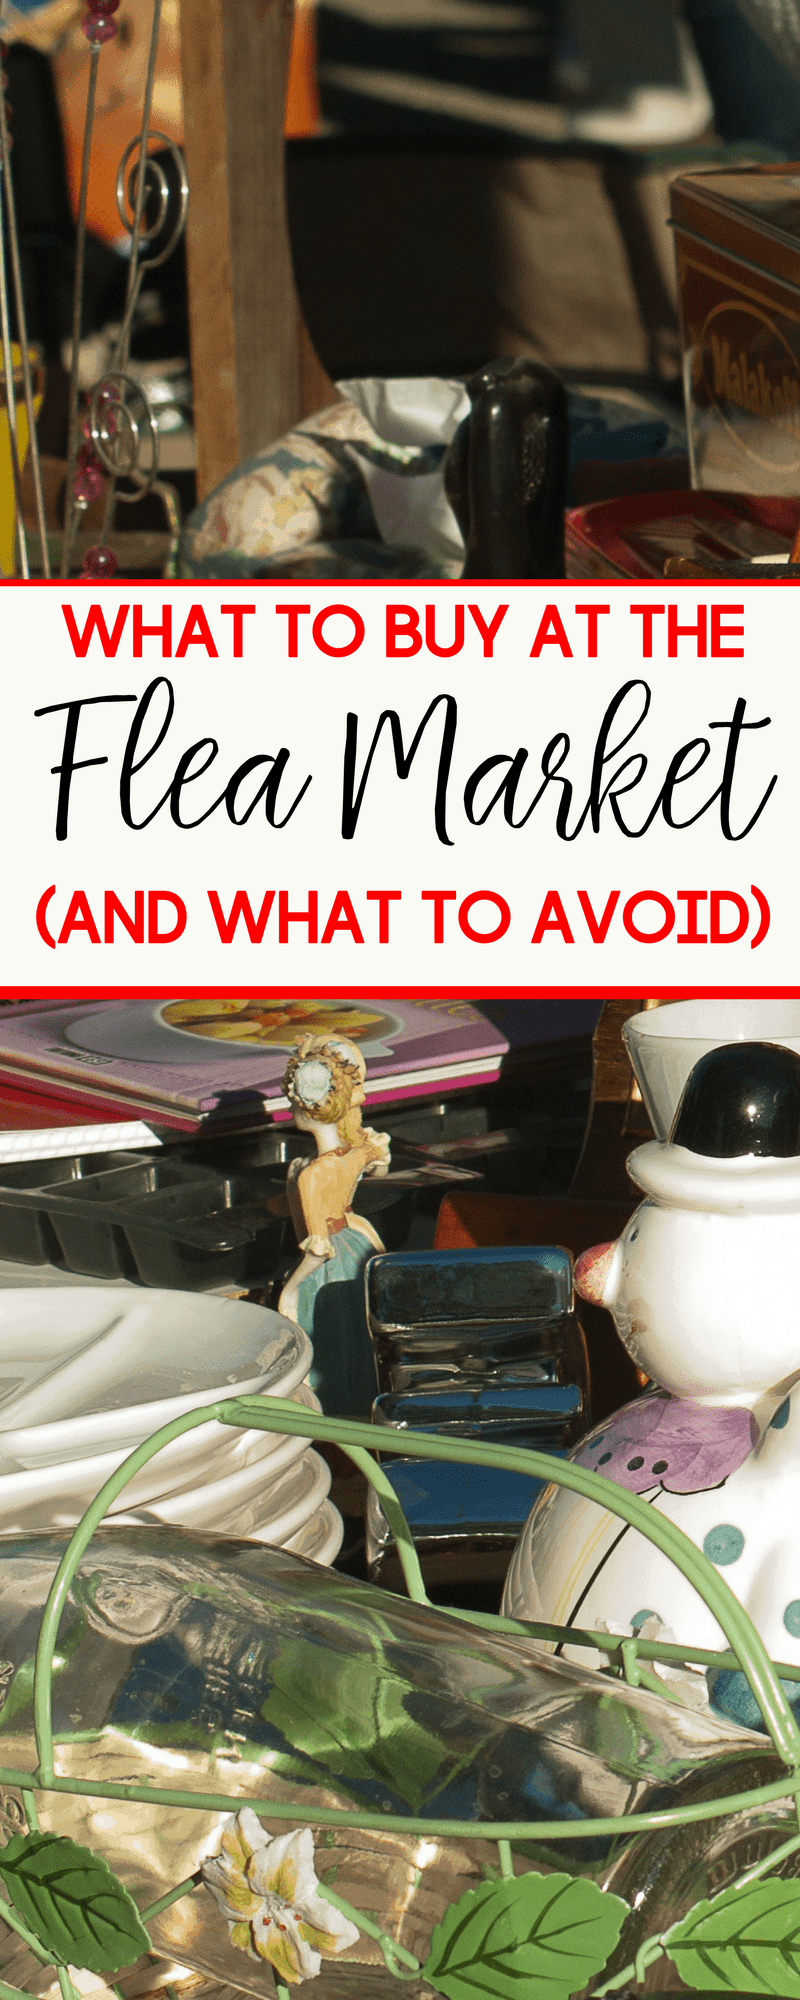 The warmer weather brings about more yard sales and flea market shopping opportunities. Make the most of your time and money with these tips on what to buy and what to avoid at a flea market or yard sale.